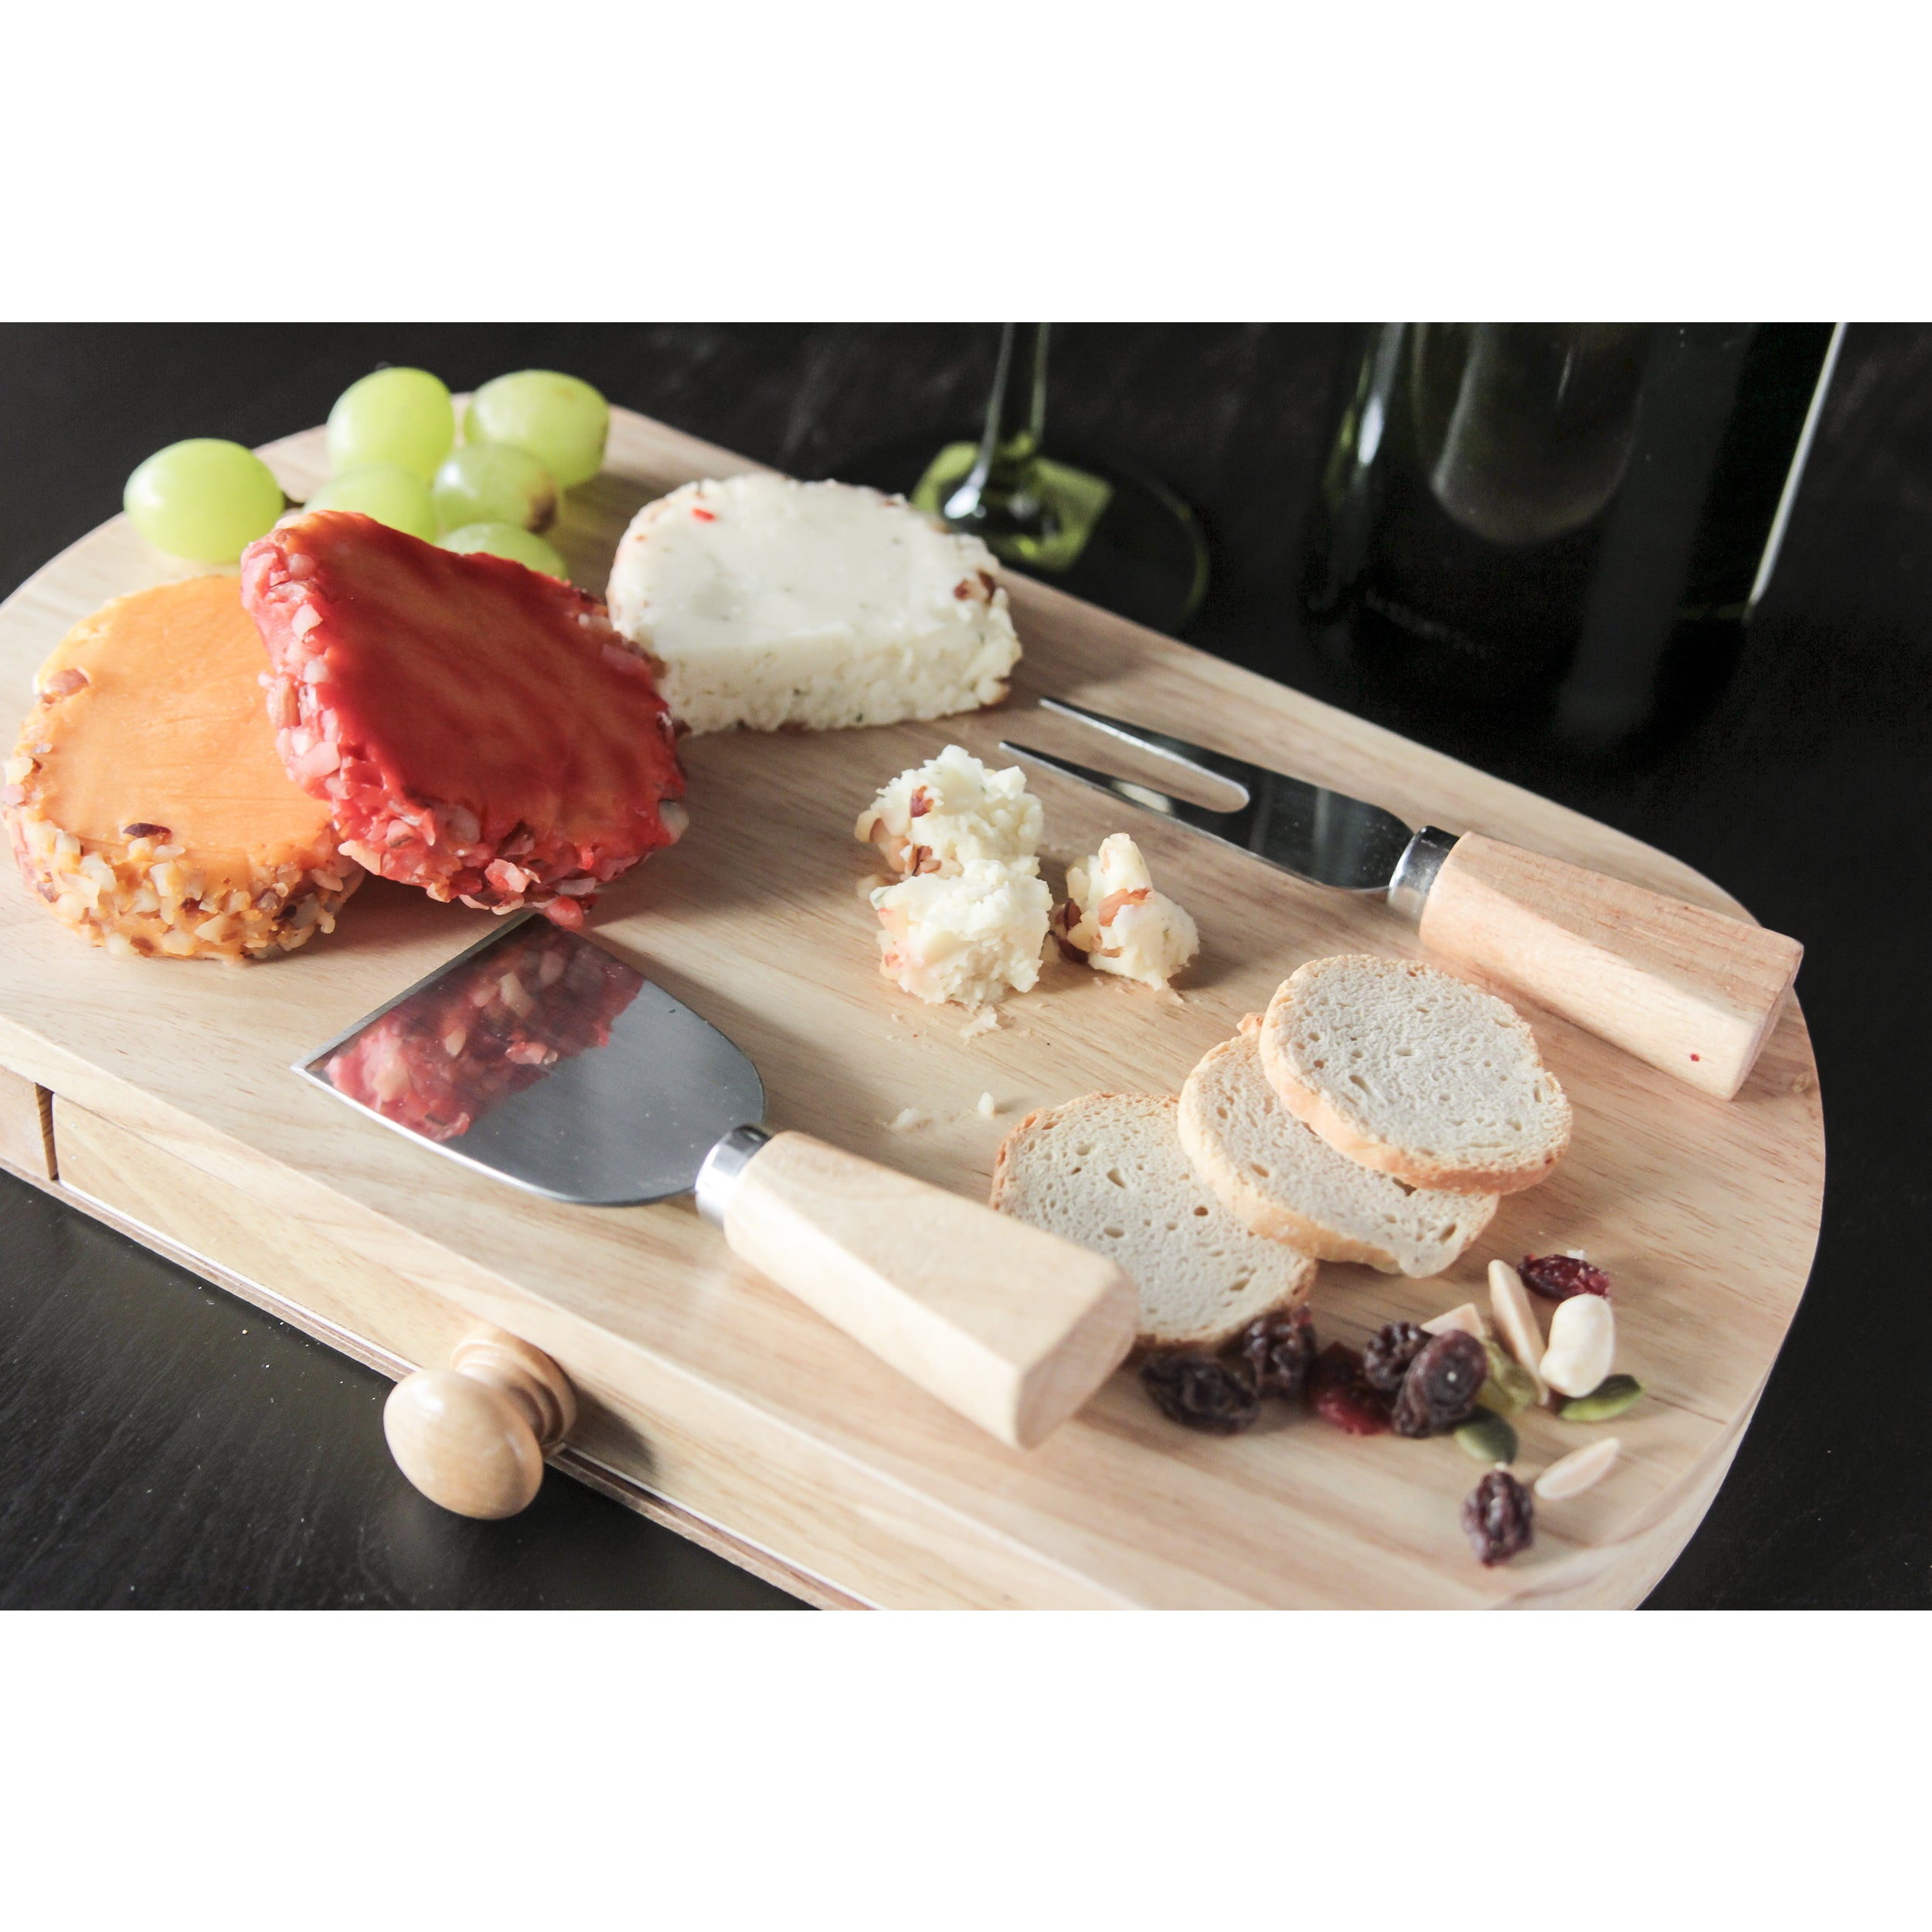 Cheese Board with Slide Out Drawers (wood), Silver stainl...